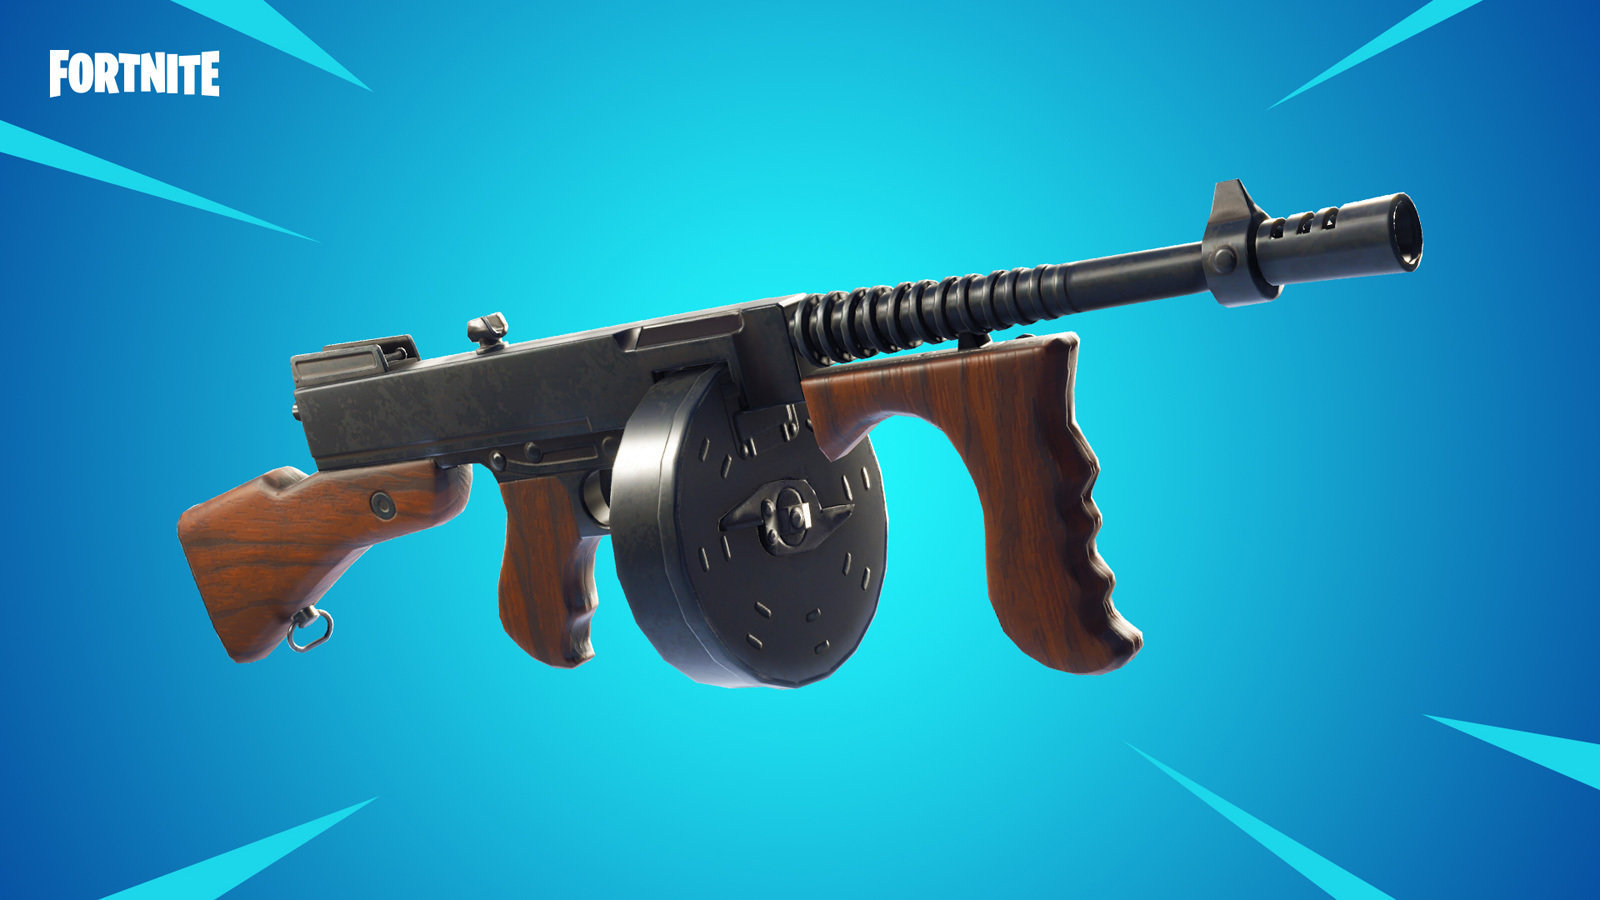 bring back all vaulted weapons in playgrounds and creative mode in fortnite - fortnite argentina vbucks